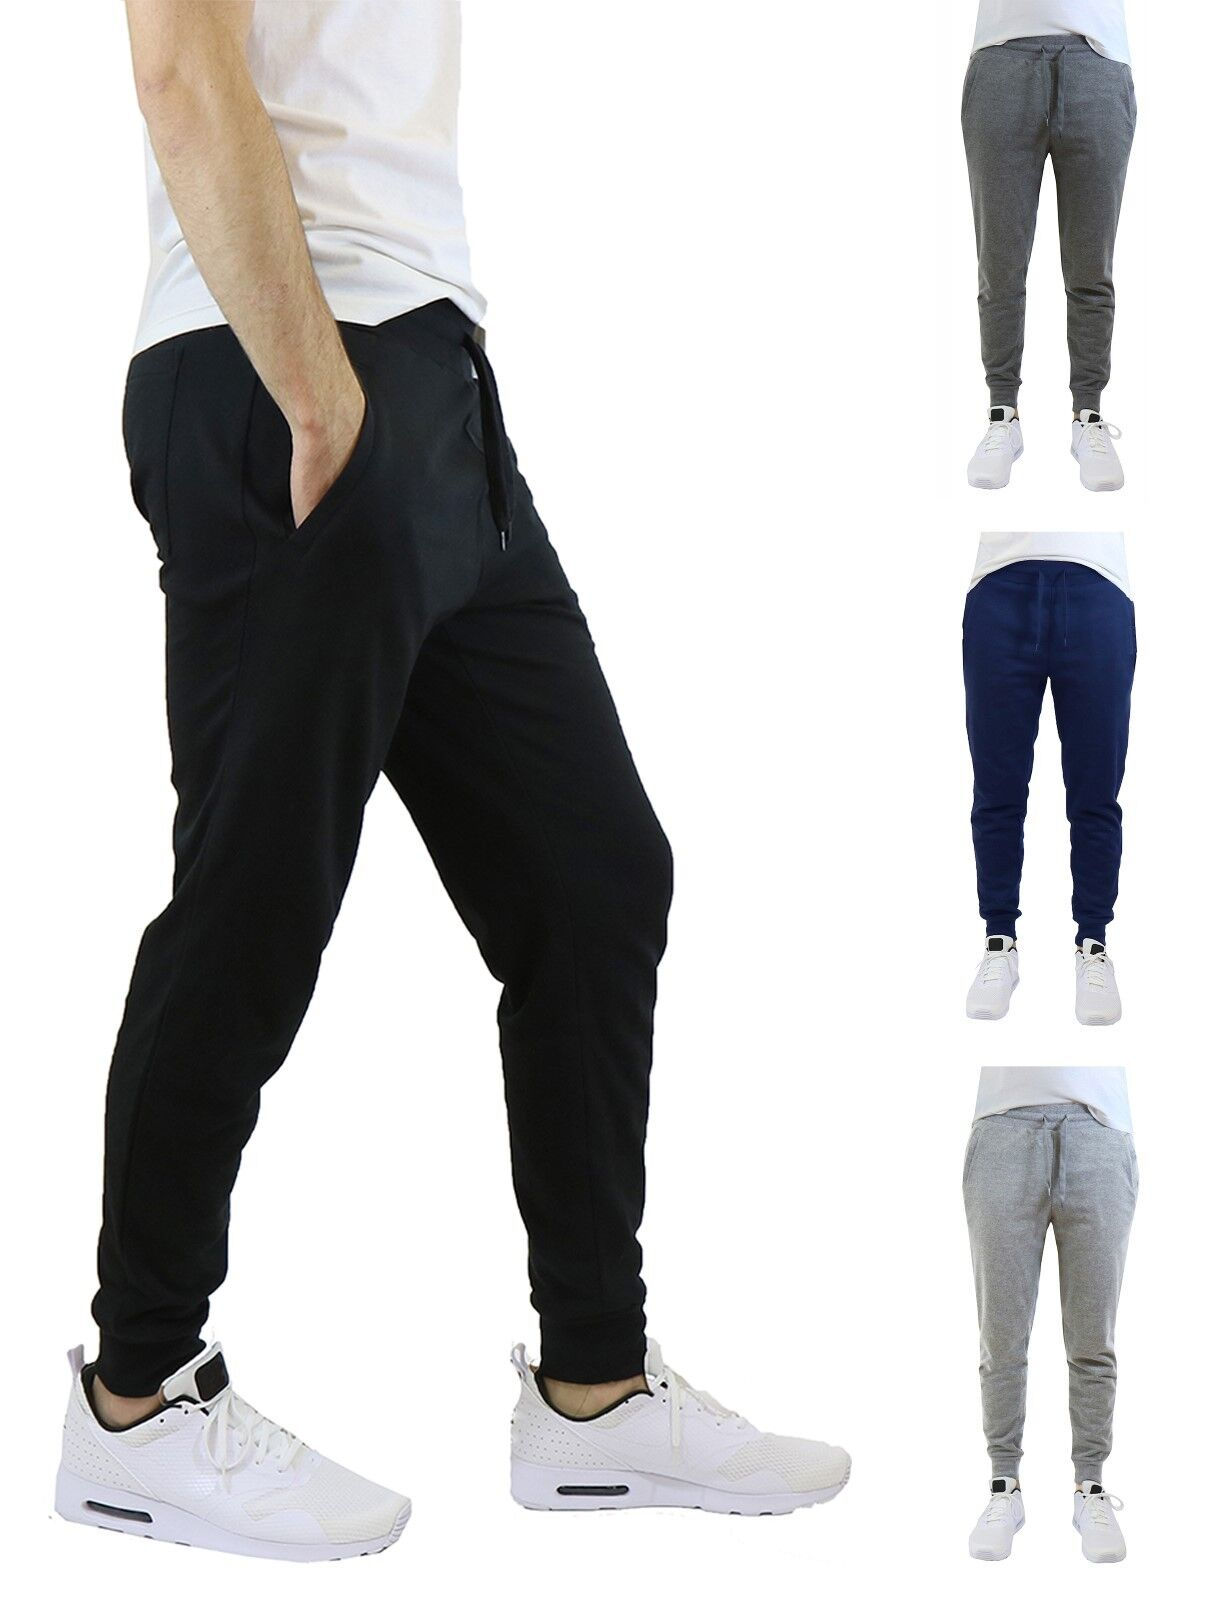 Mens French Terry Active Jogger Pants Sweatpants Lounge Sleep Gym S M L XL XXL Clothing, Shoes & Accessories